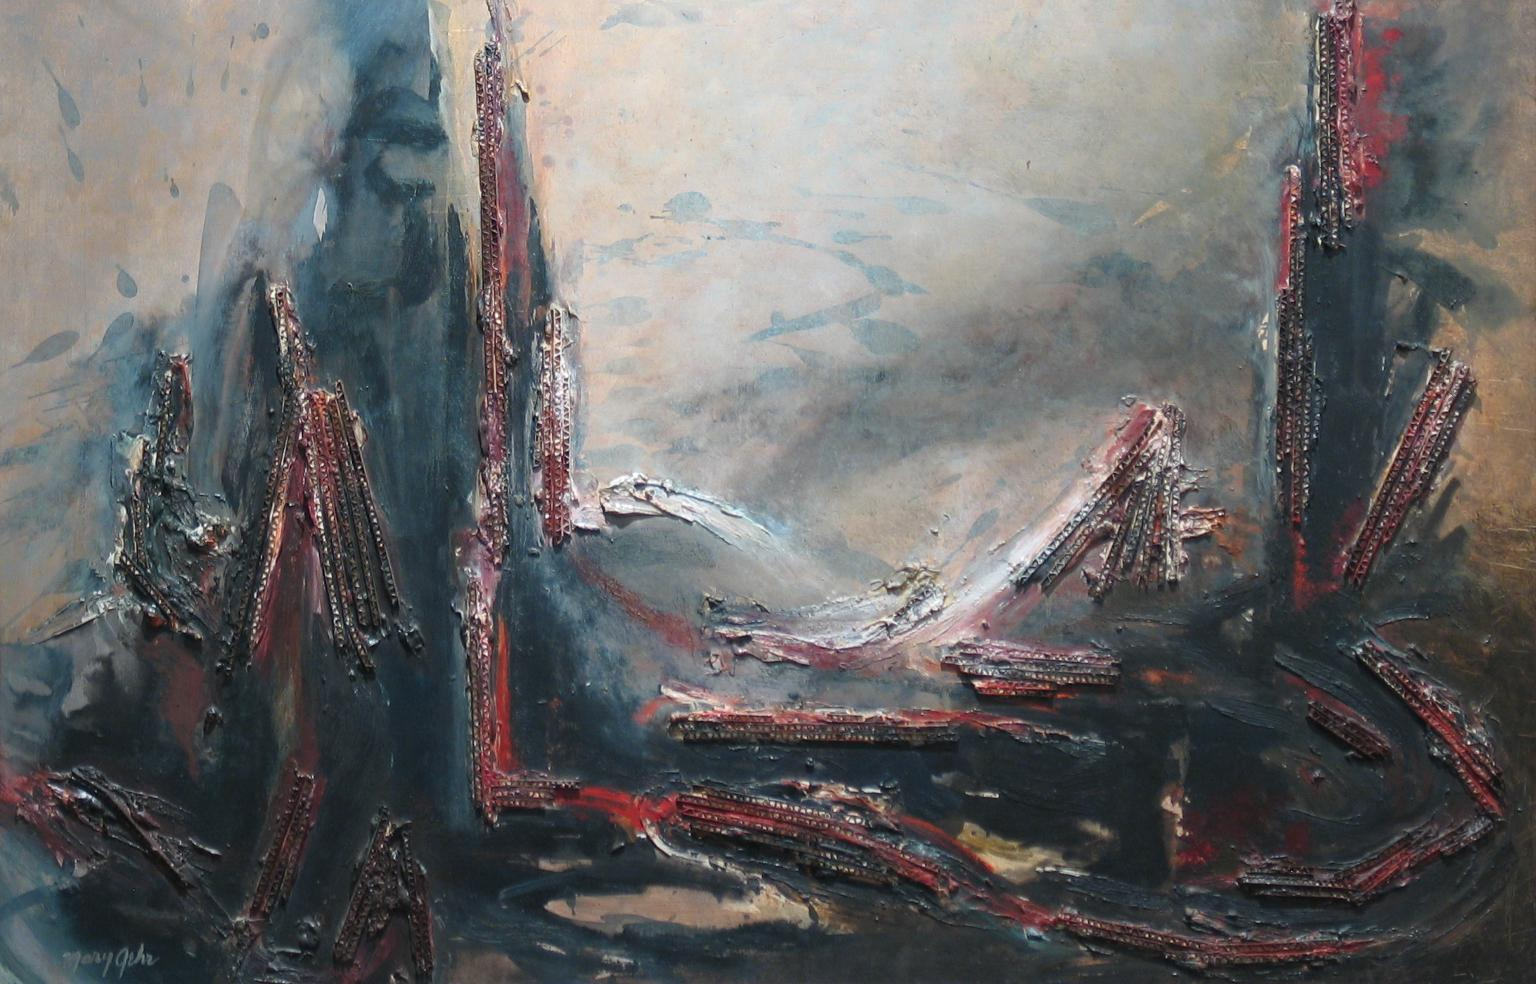 mary gehr - industrial landscape